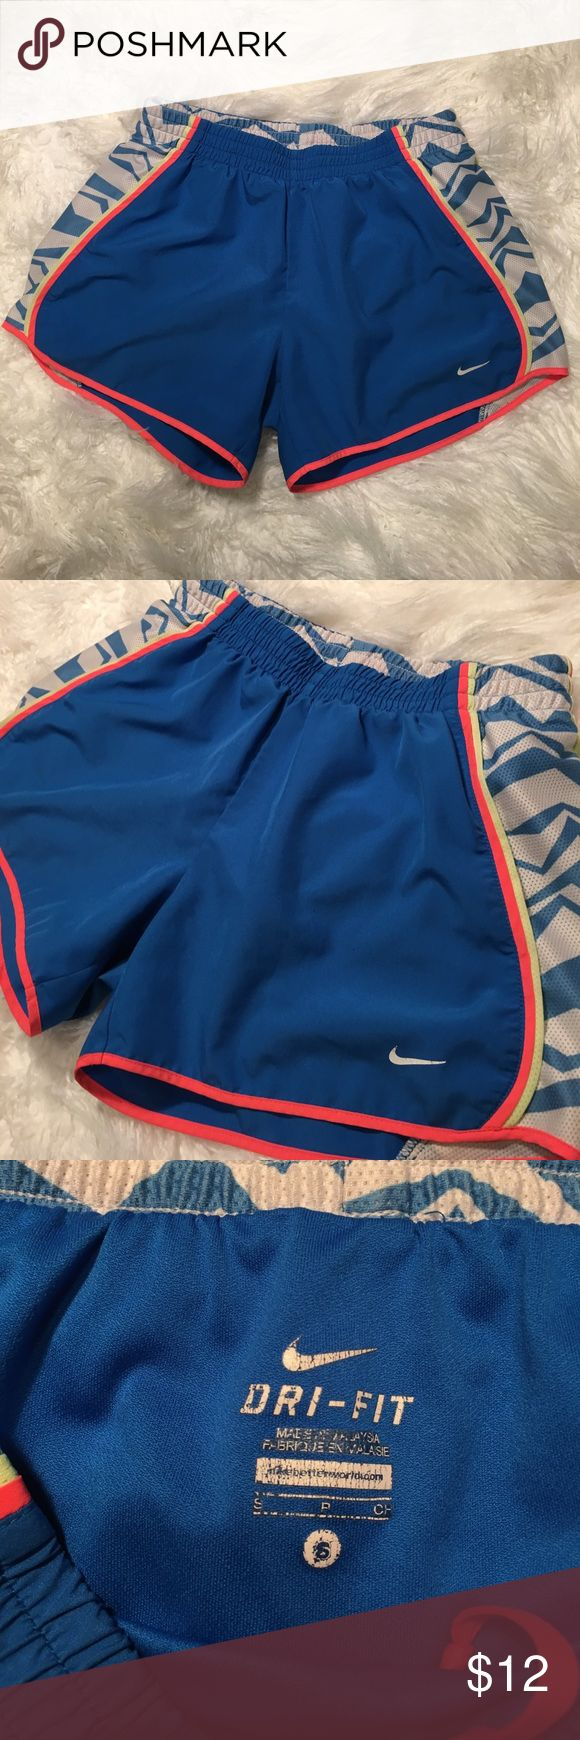 Nike Dri fit shorts sz Small Nike Dri fit shorts sz Small. Gently worn but shows wear in pic 5 and 6. Nike Shorts